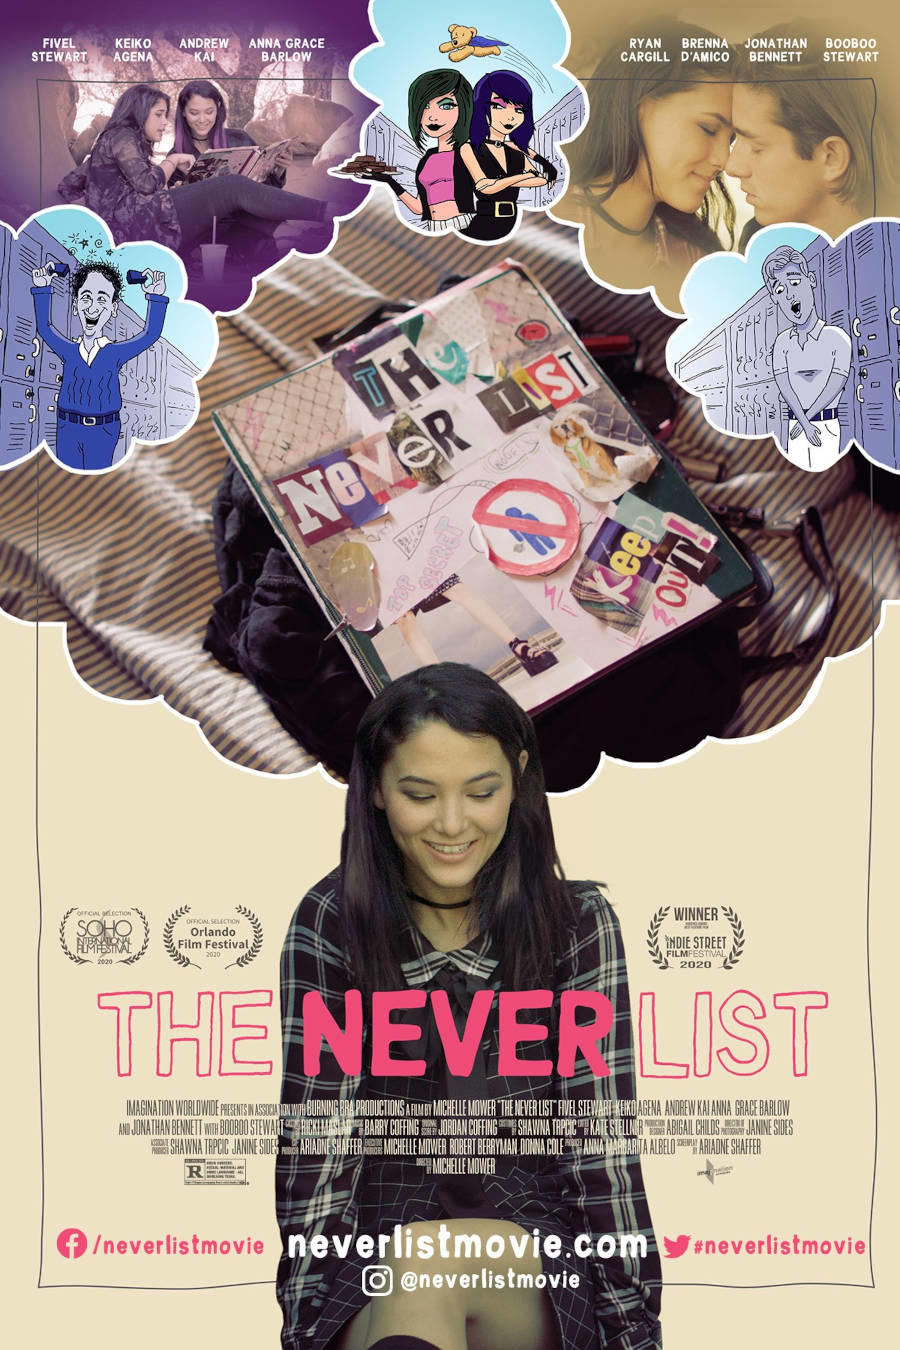 The Never List poster art